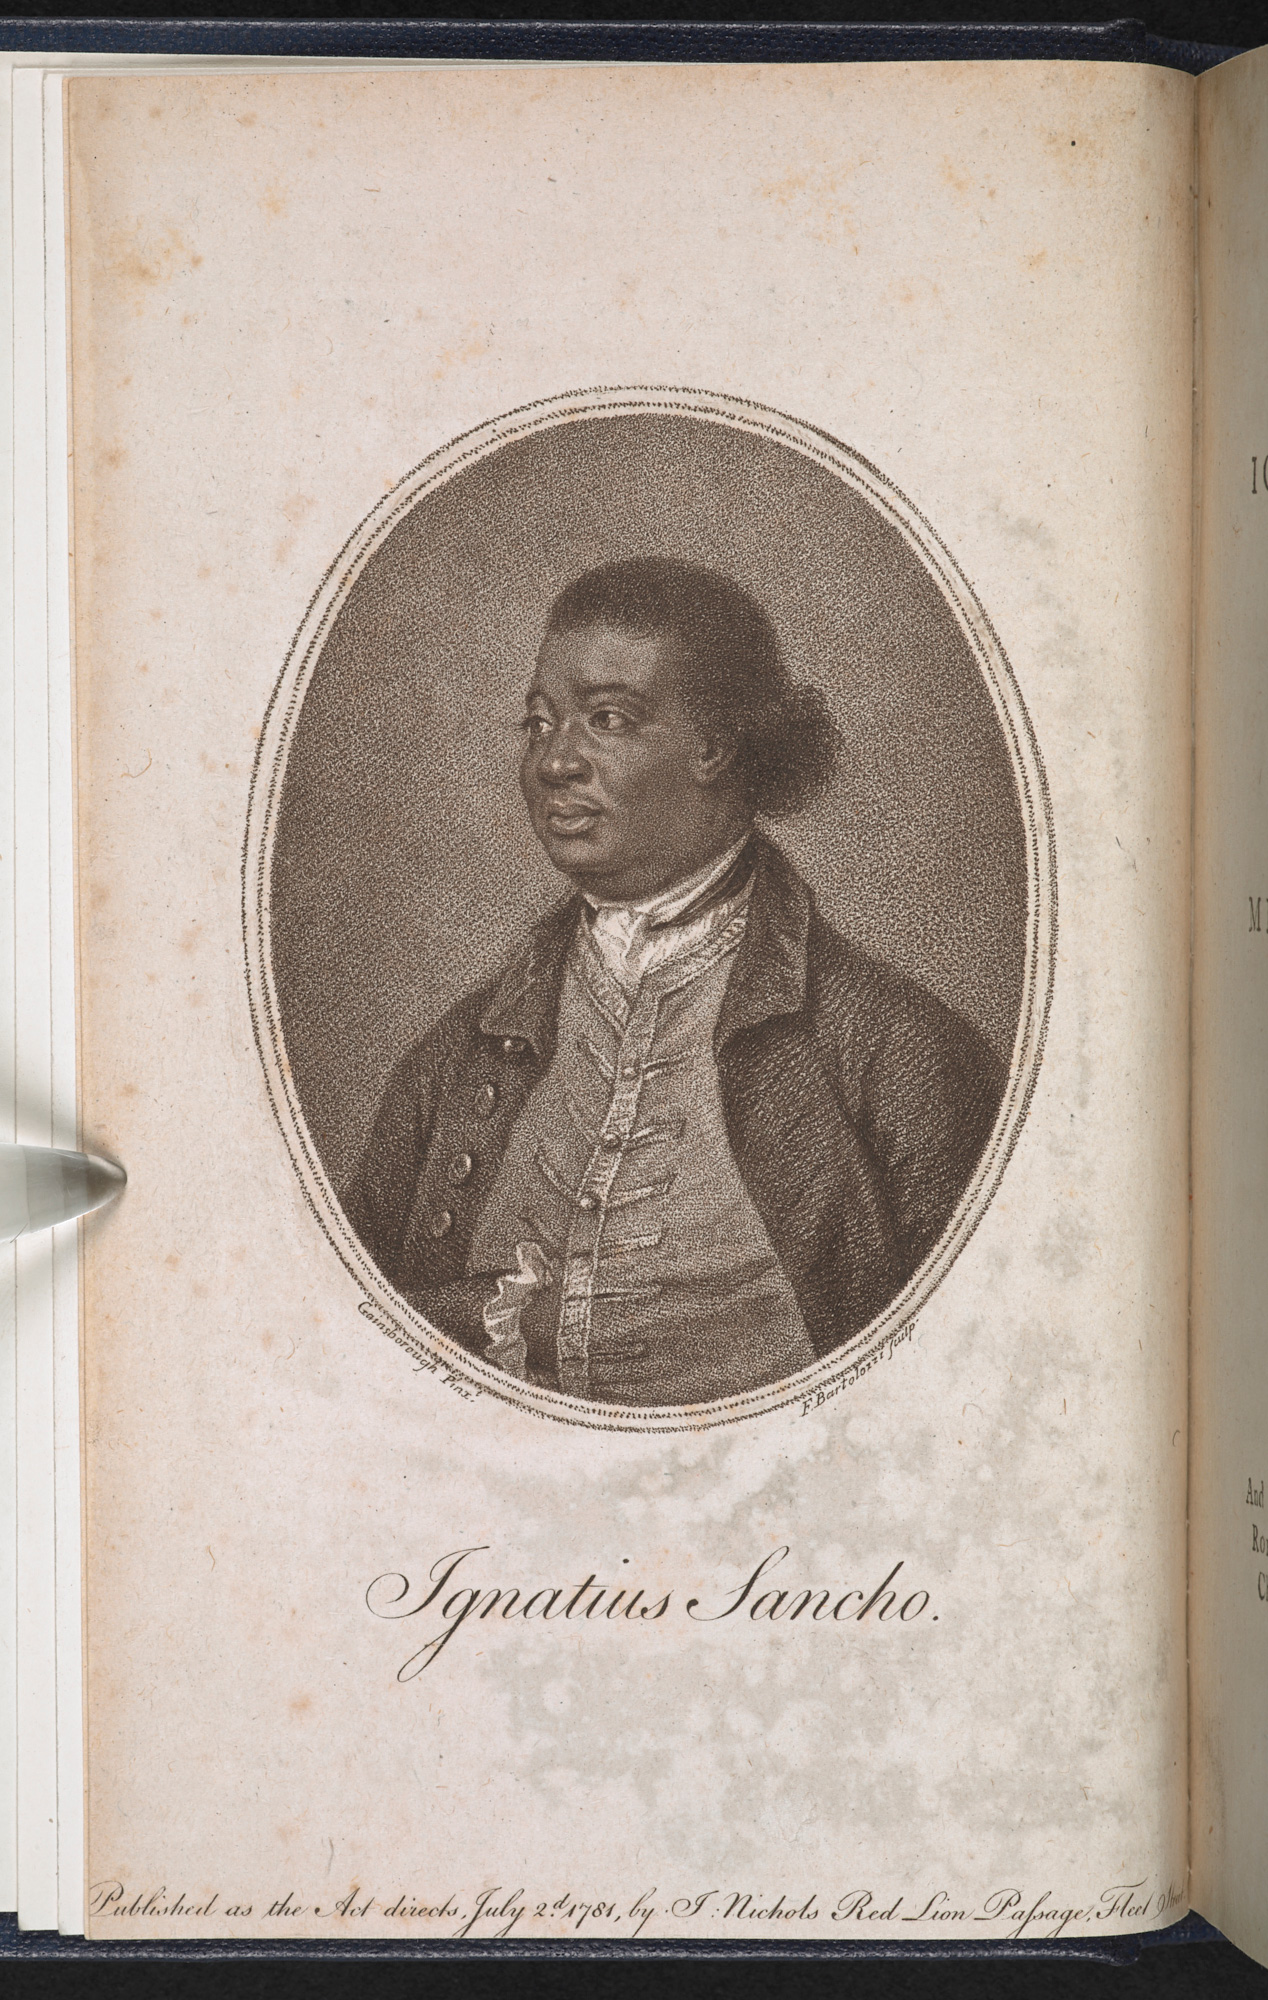 First edition of the Letters of the late Ignatius Sancho, an African, 1782